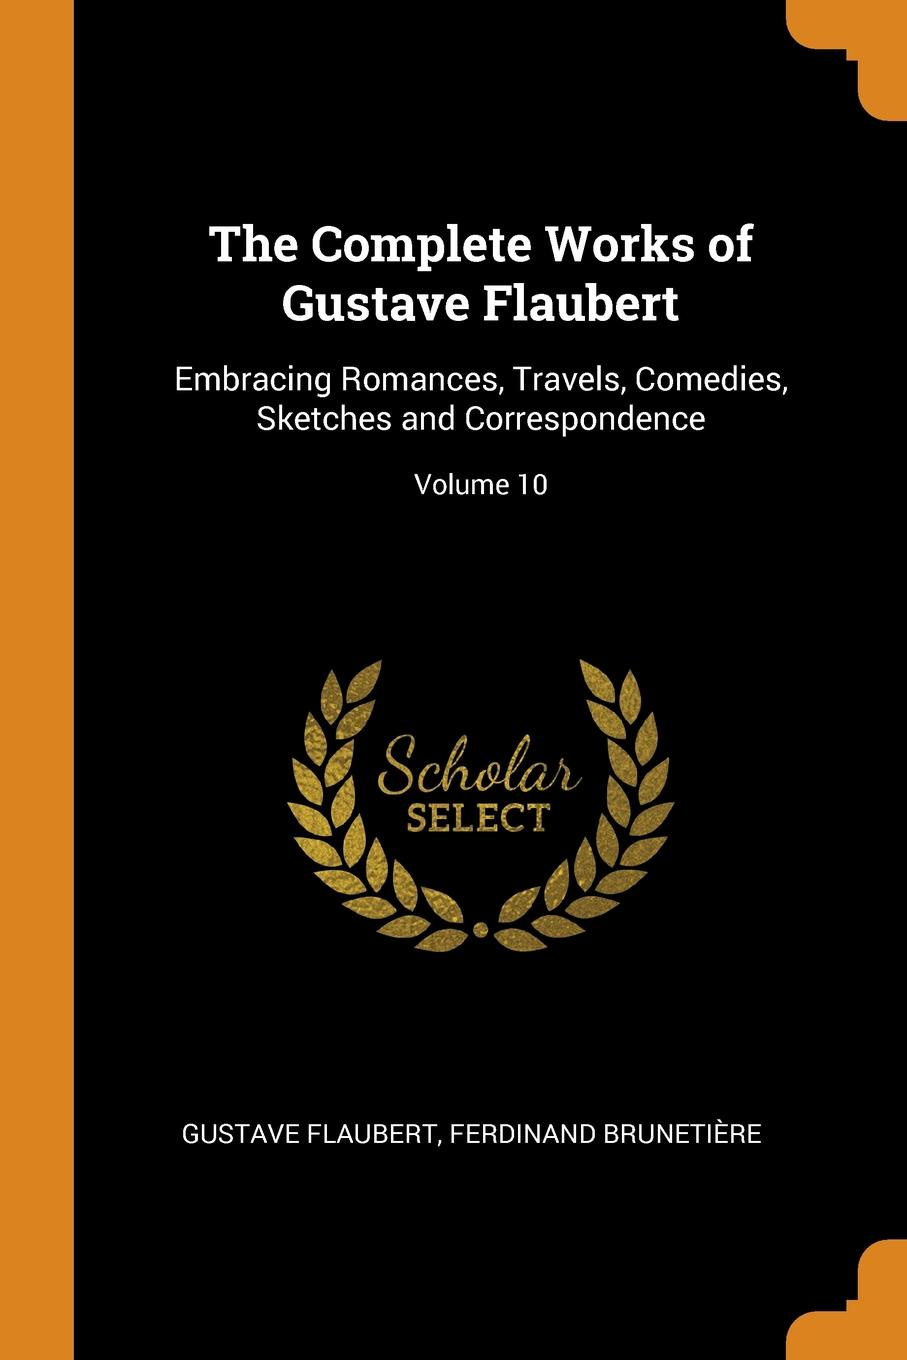 Gustave Flaubert, Ferdinand Brunetière The Complete Works of Gustave Flaubert. Embracing Romances, Travels, Comedies, Sketches and Correspondence; Volume 10 flaubert gustave the complete works of gustave flaubert embracing romances travels comedies sketches and correspondence volume 10